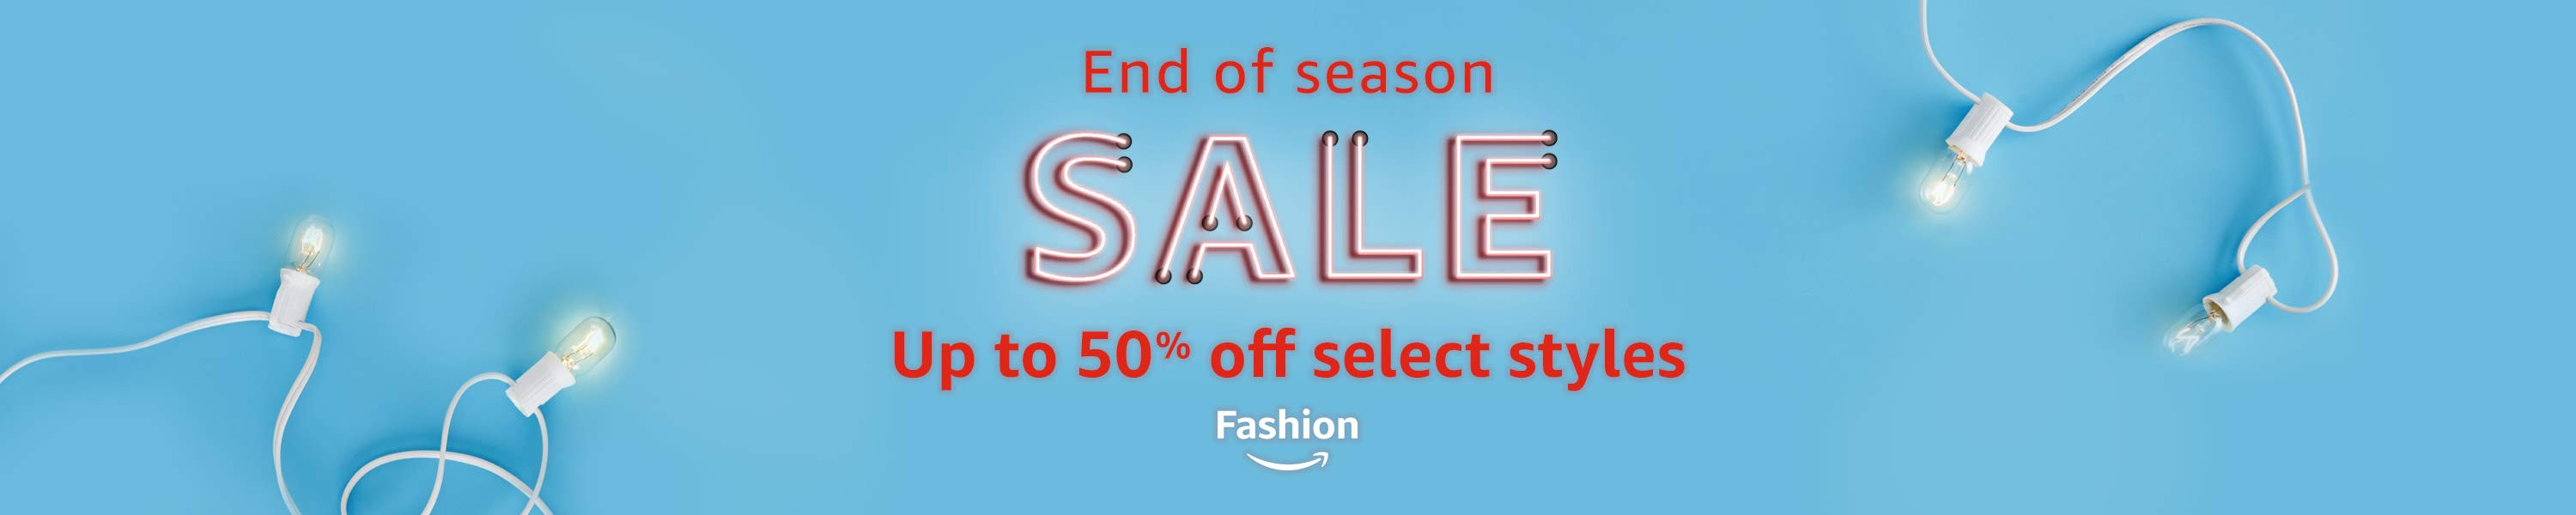 up to 50% off select fashion